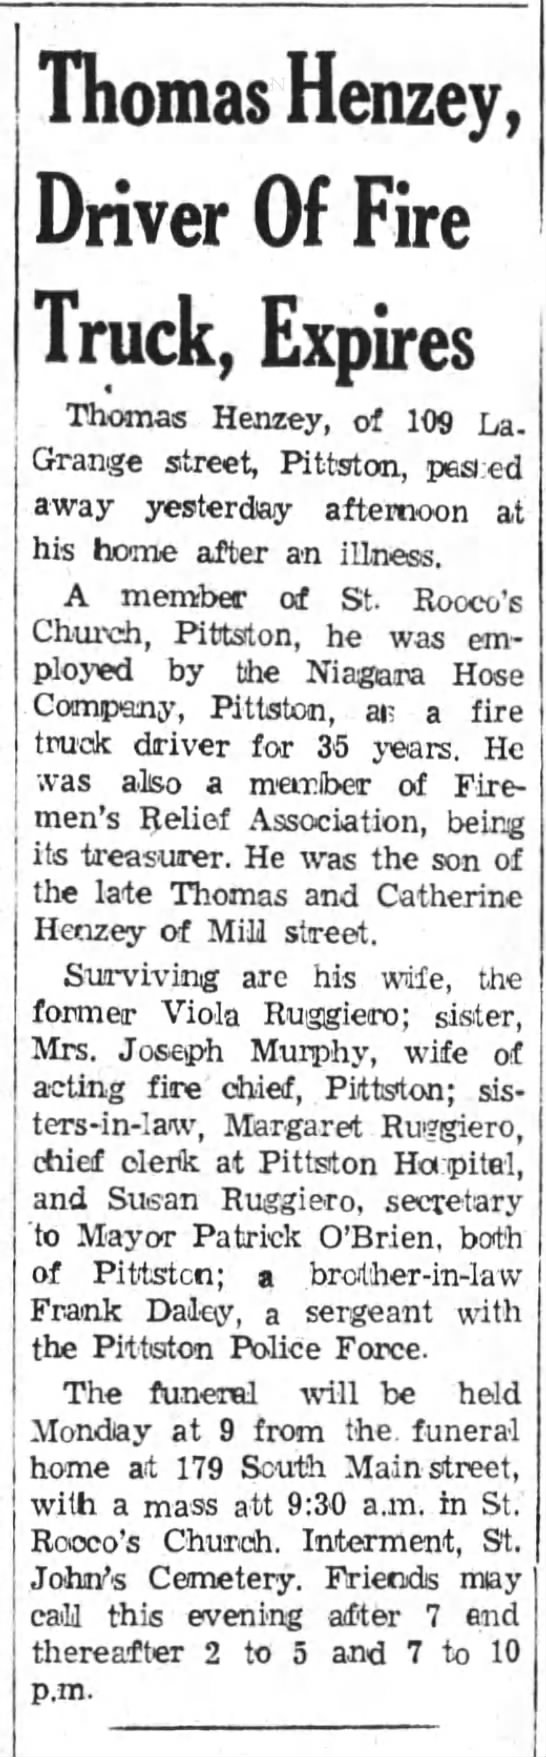 Th. Henzey, fire truck driver dies 1959 - Thomas Henzey, Driver Of Fire Truck, Expires...